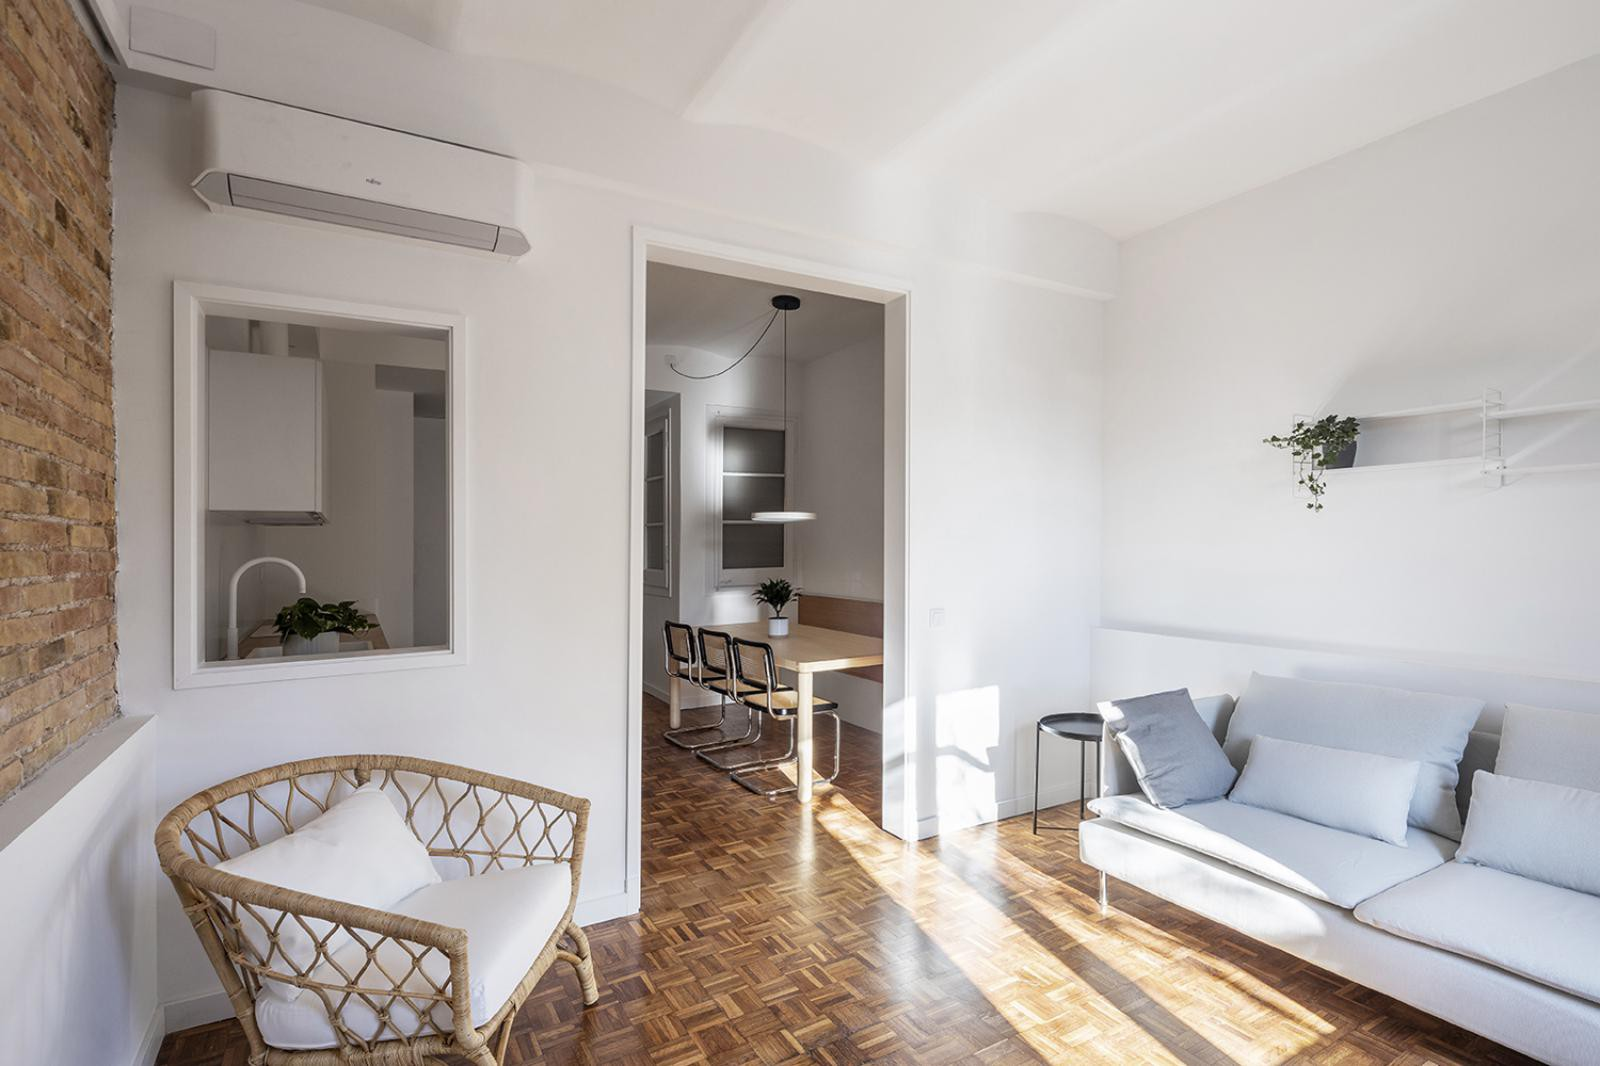 MG Eixample Inmobiliaria - eixample-dret-consell-de-cent